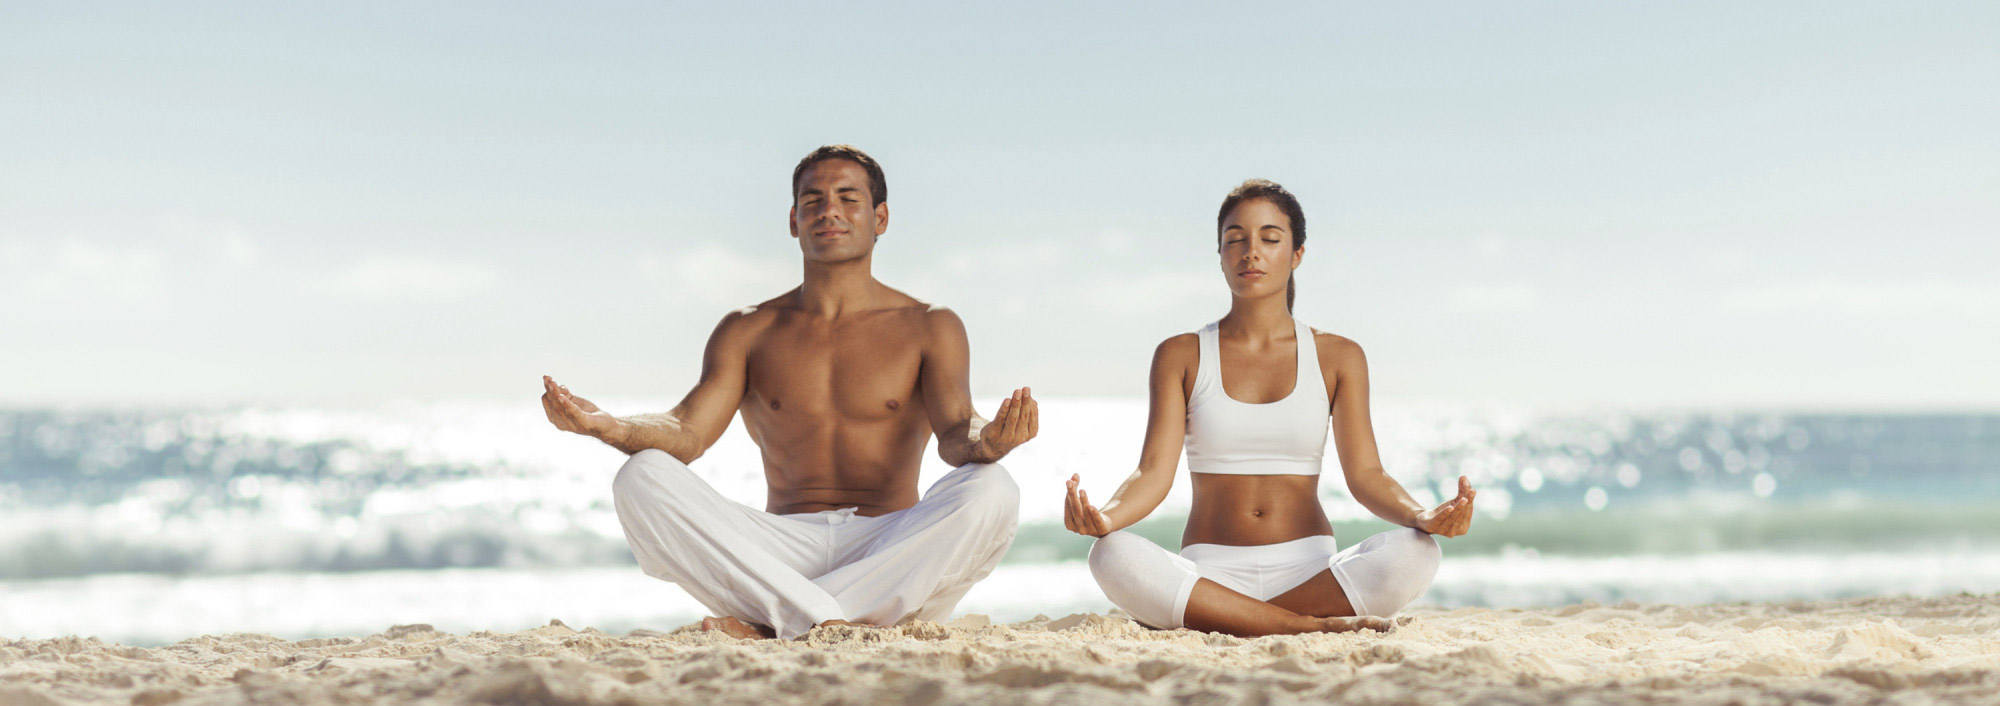 Why is breathing recommended for meditation? 4